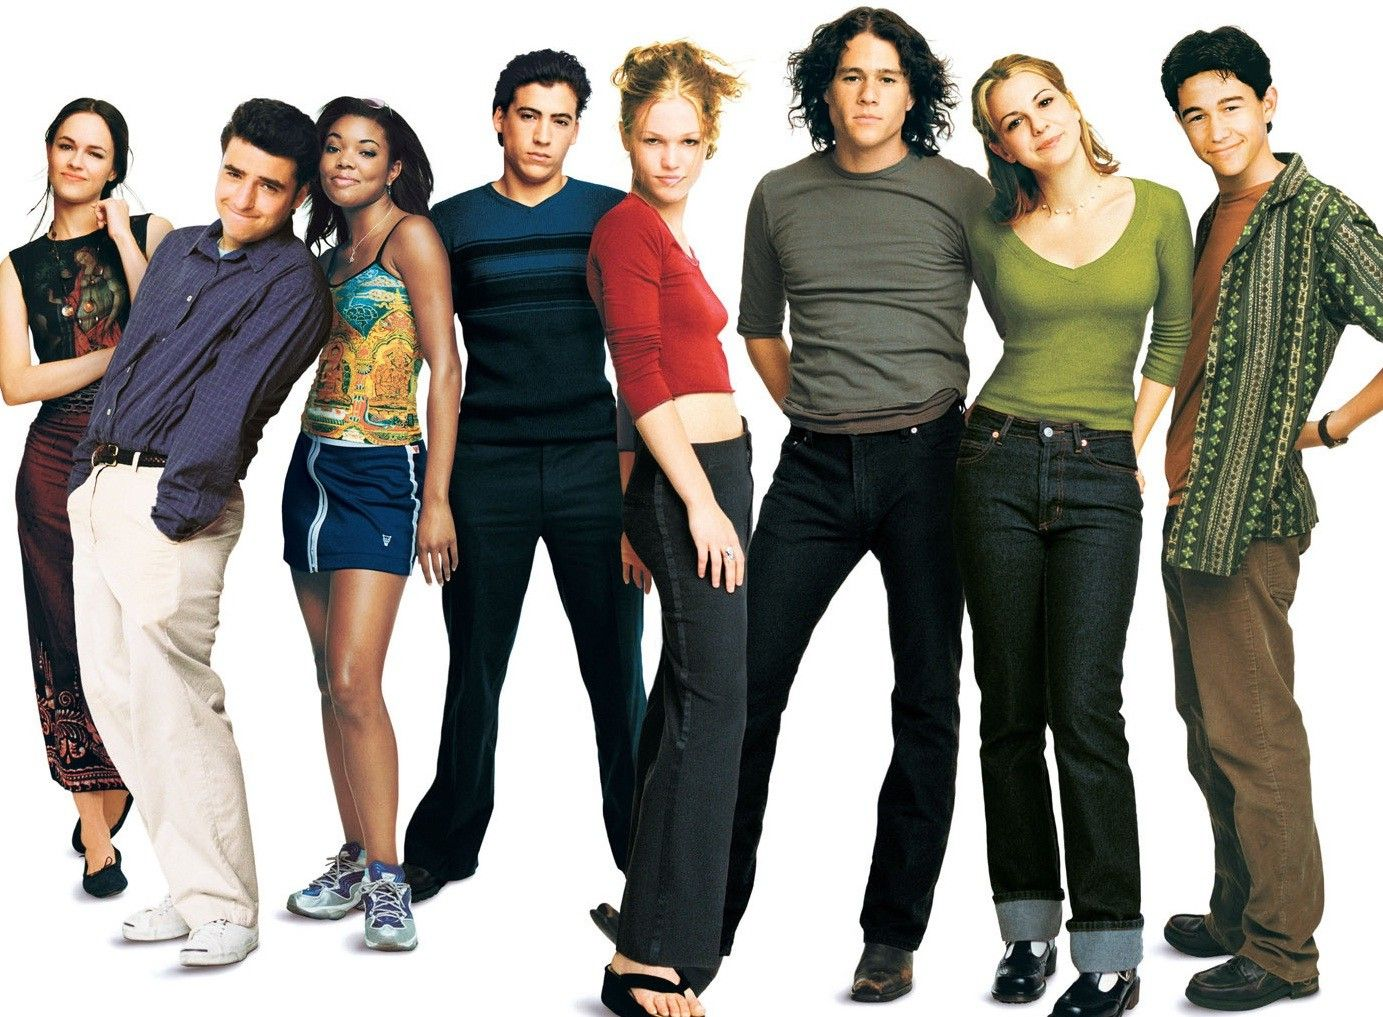 Pin Em The Breakfast Club 10 Things I Hate About You